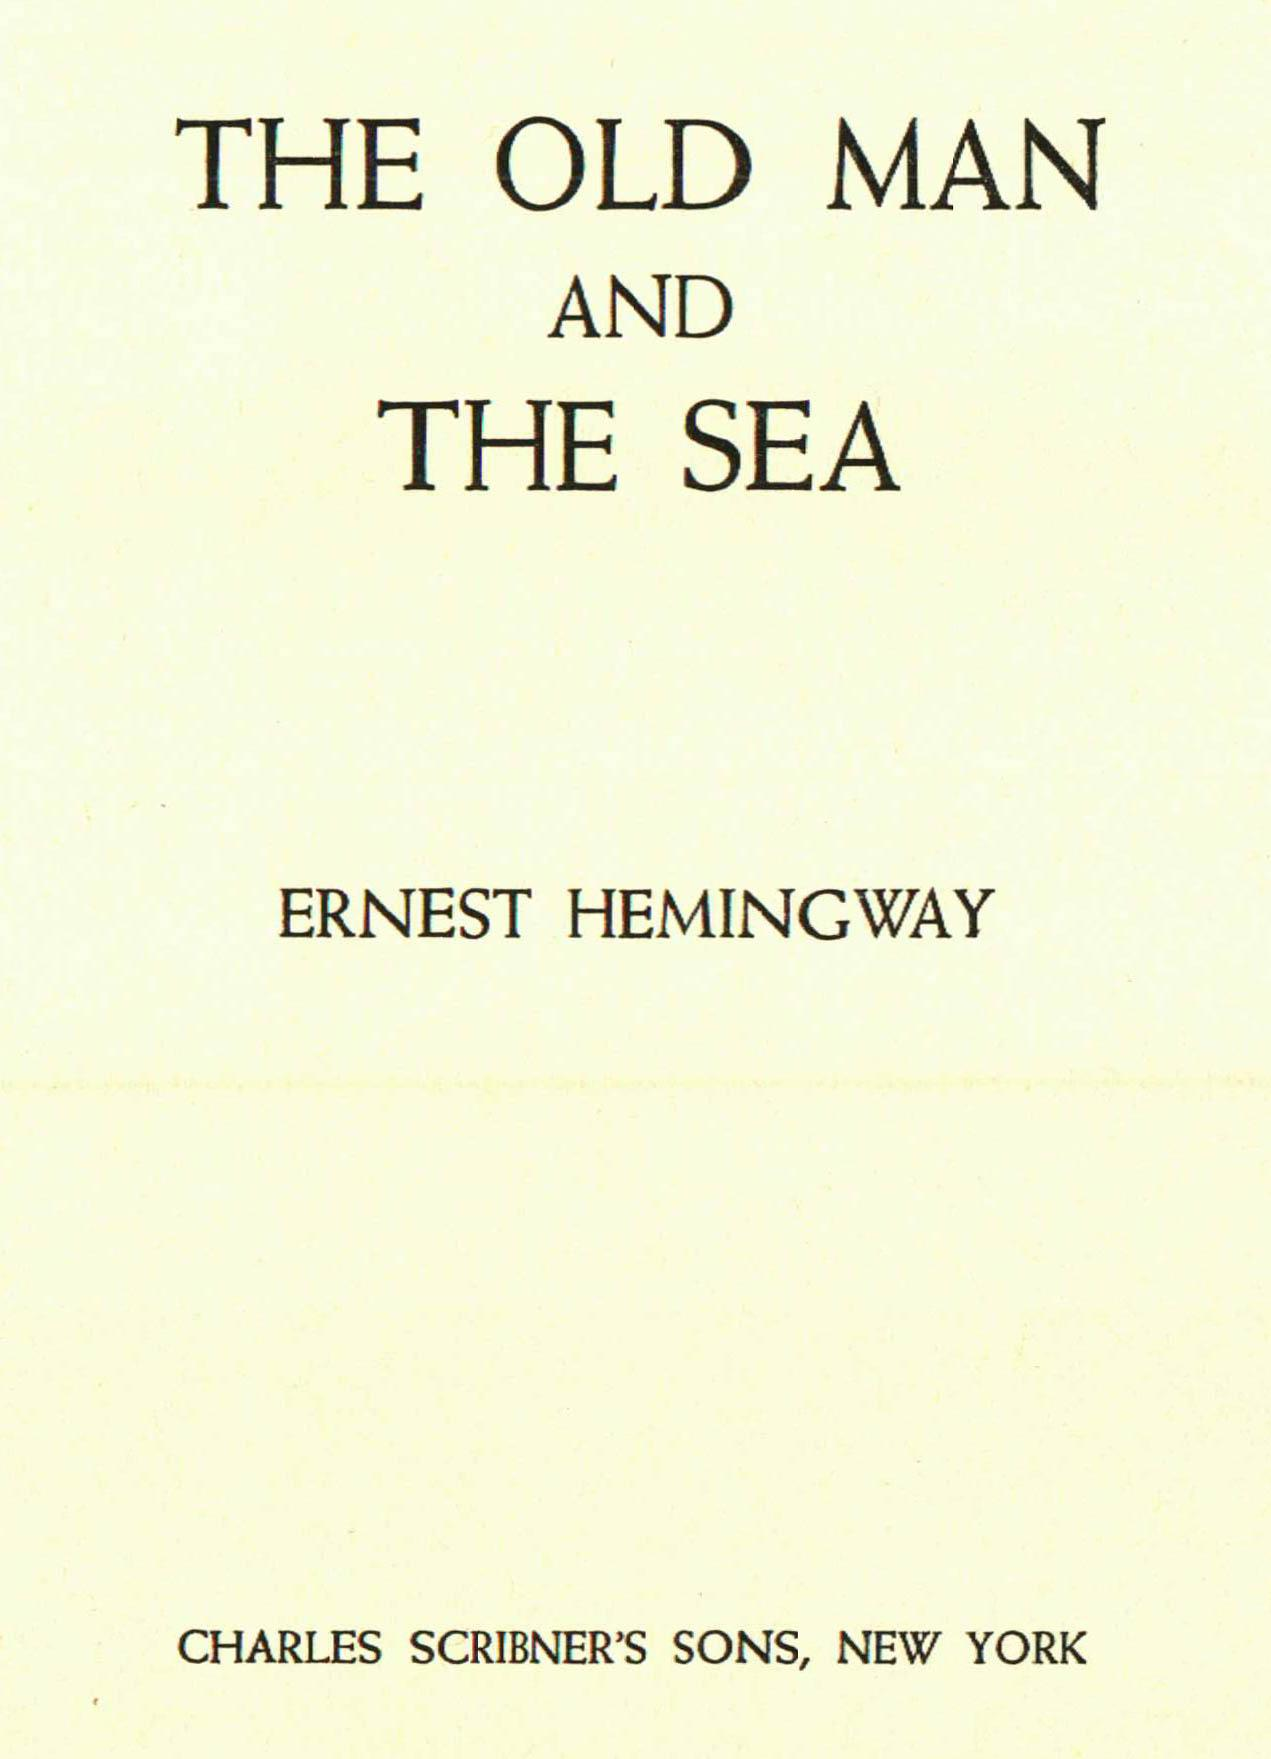 an analysis of modernism in ernest hemingways the old man and the sea A biographical and thematic introduction to ernest hemingway  disintegration  of old values, hemingway has presented the predicament of the modern man in   and death as their themes, his novels present a symbolic interpretation of life   bullfighting, big game hunting and deep sea fishing, and his writing reflects this.